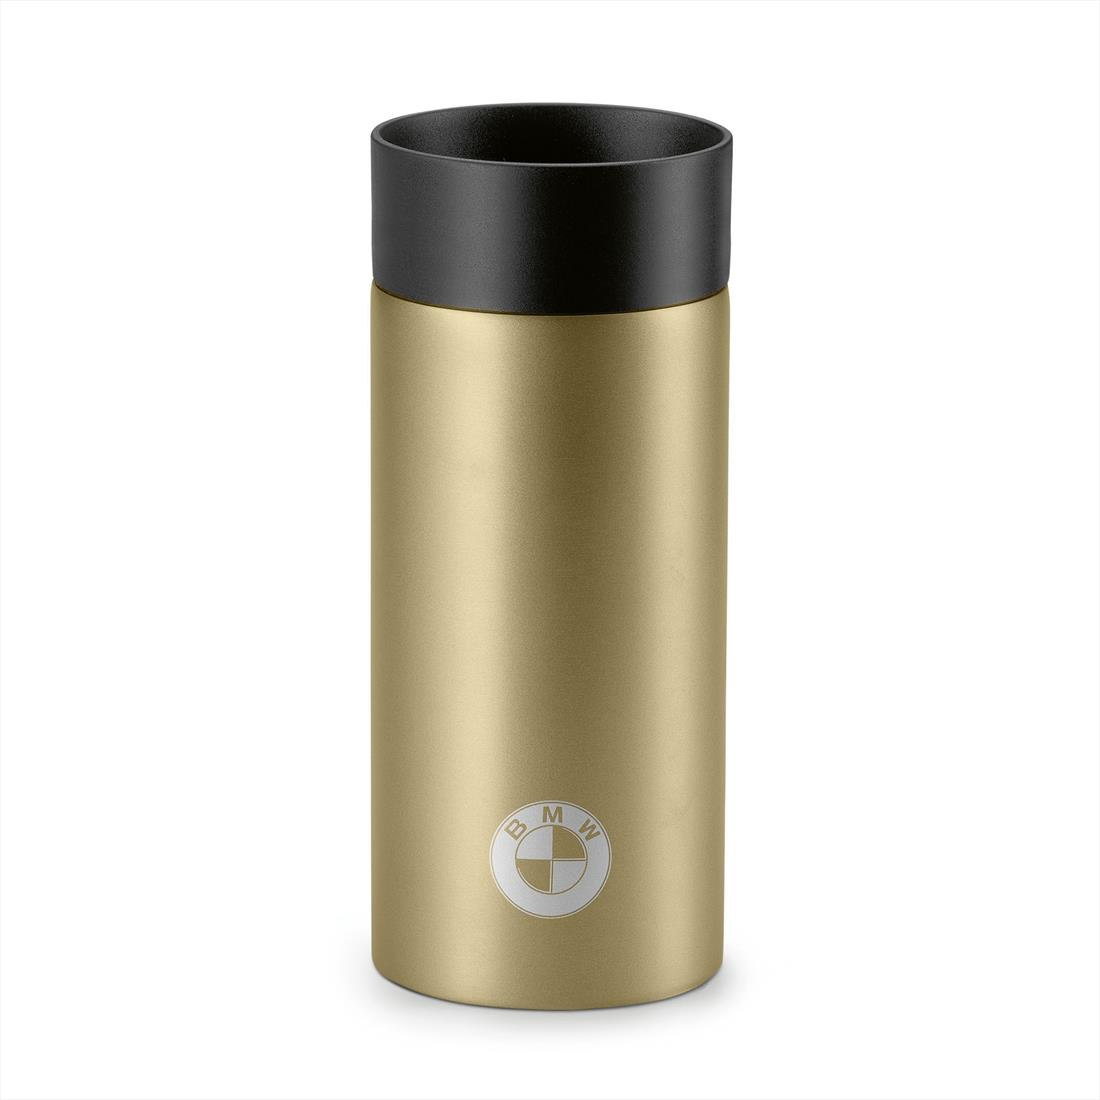 BMW LOGO THERMOS CUP